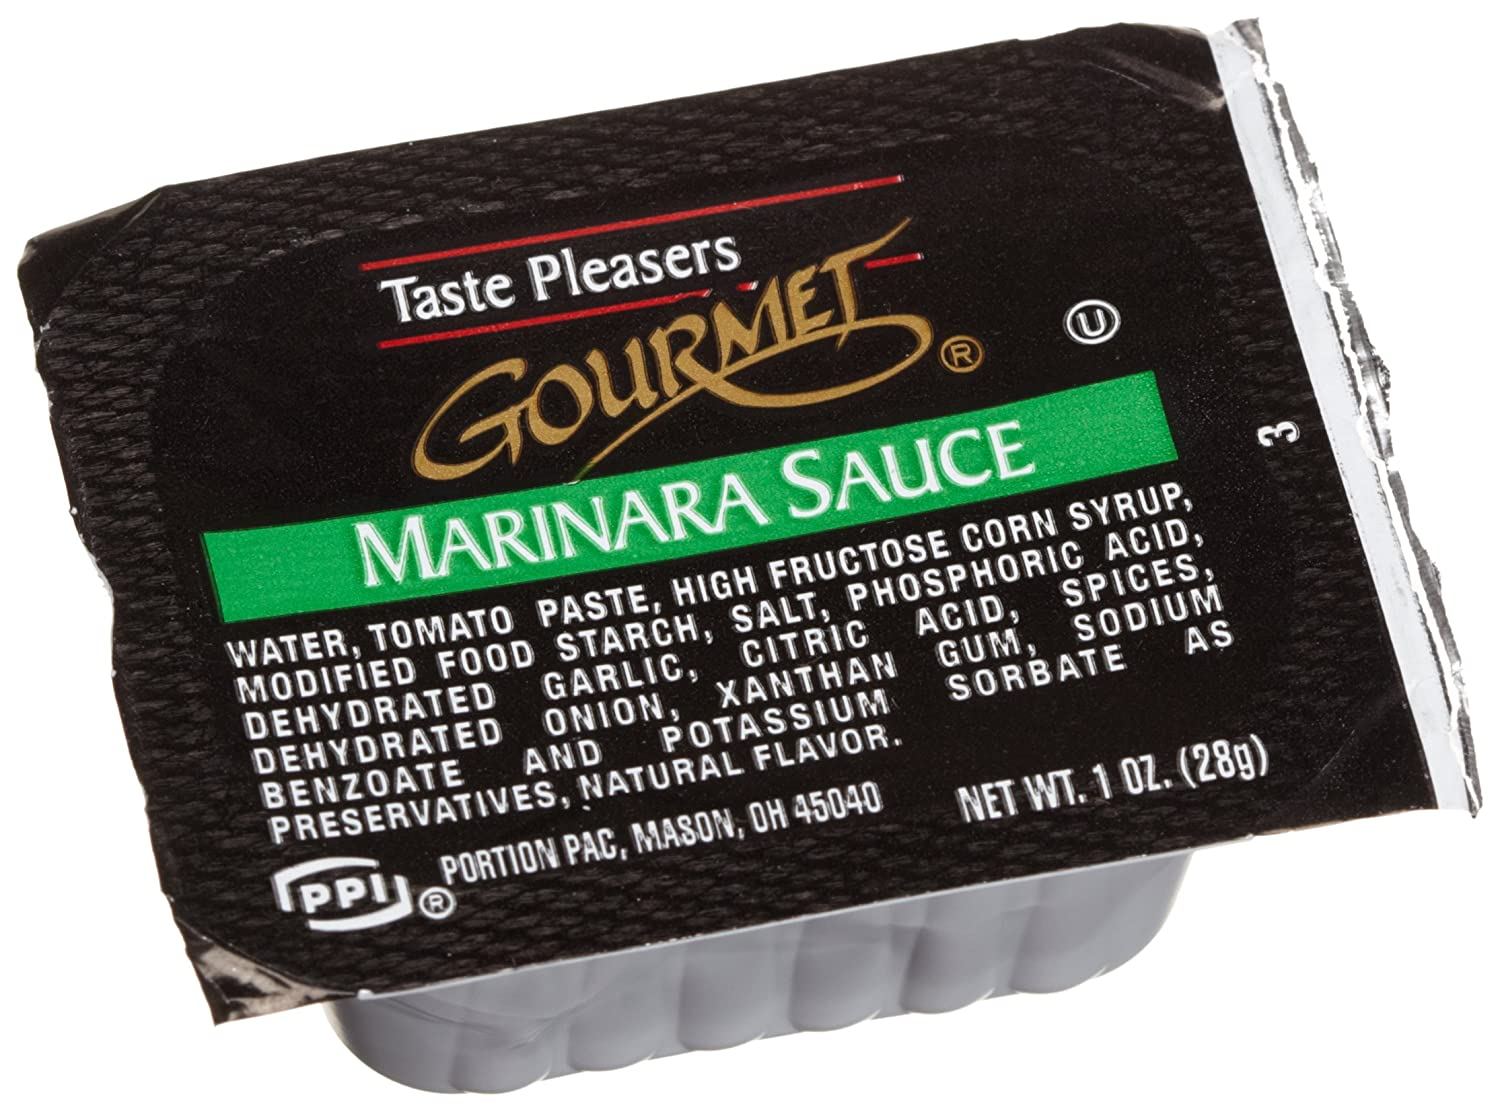 Taste Pleasers Gourmet Marinara Sauce,1-Ounce Cups (Pack of 100) скейтборды taste пенниборд taste 22 red